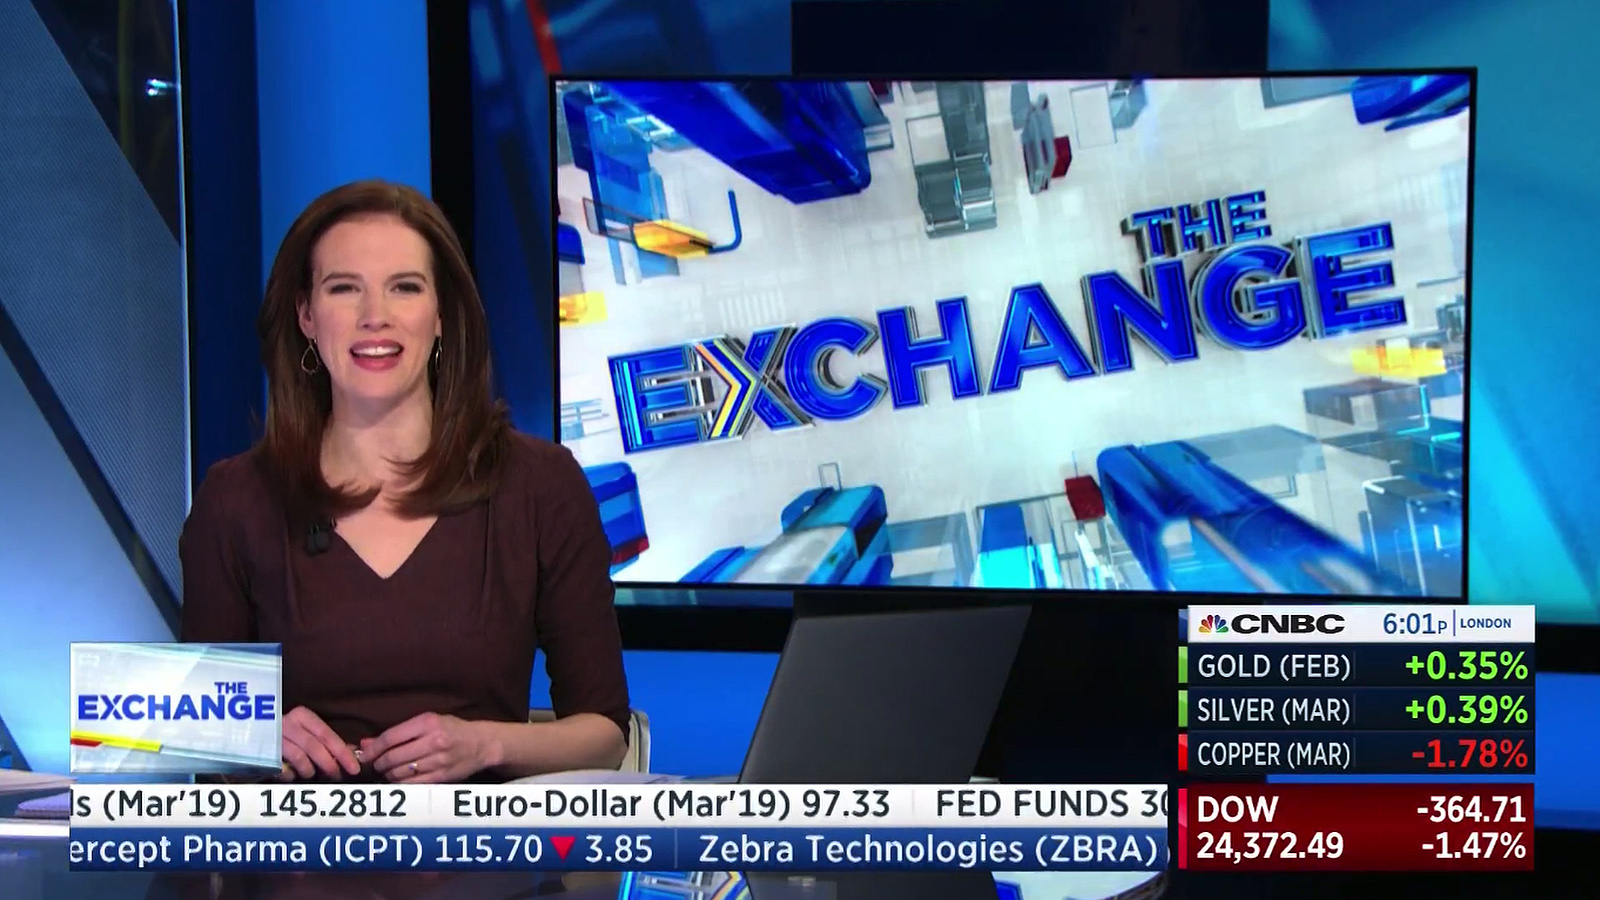 NCS_CNBC-The-Exchange_0010